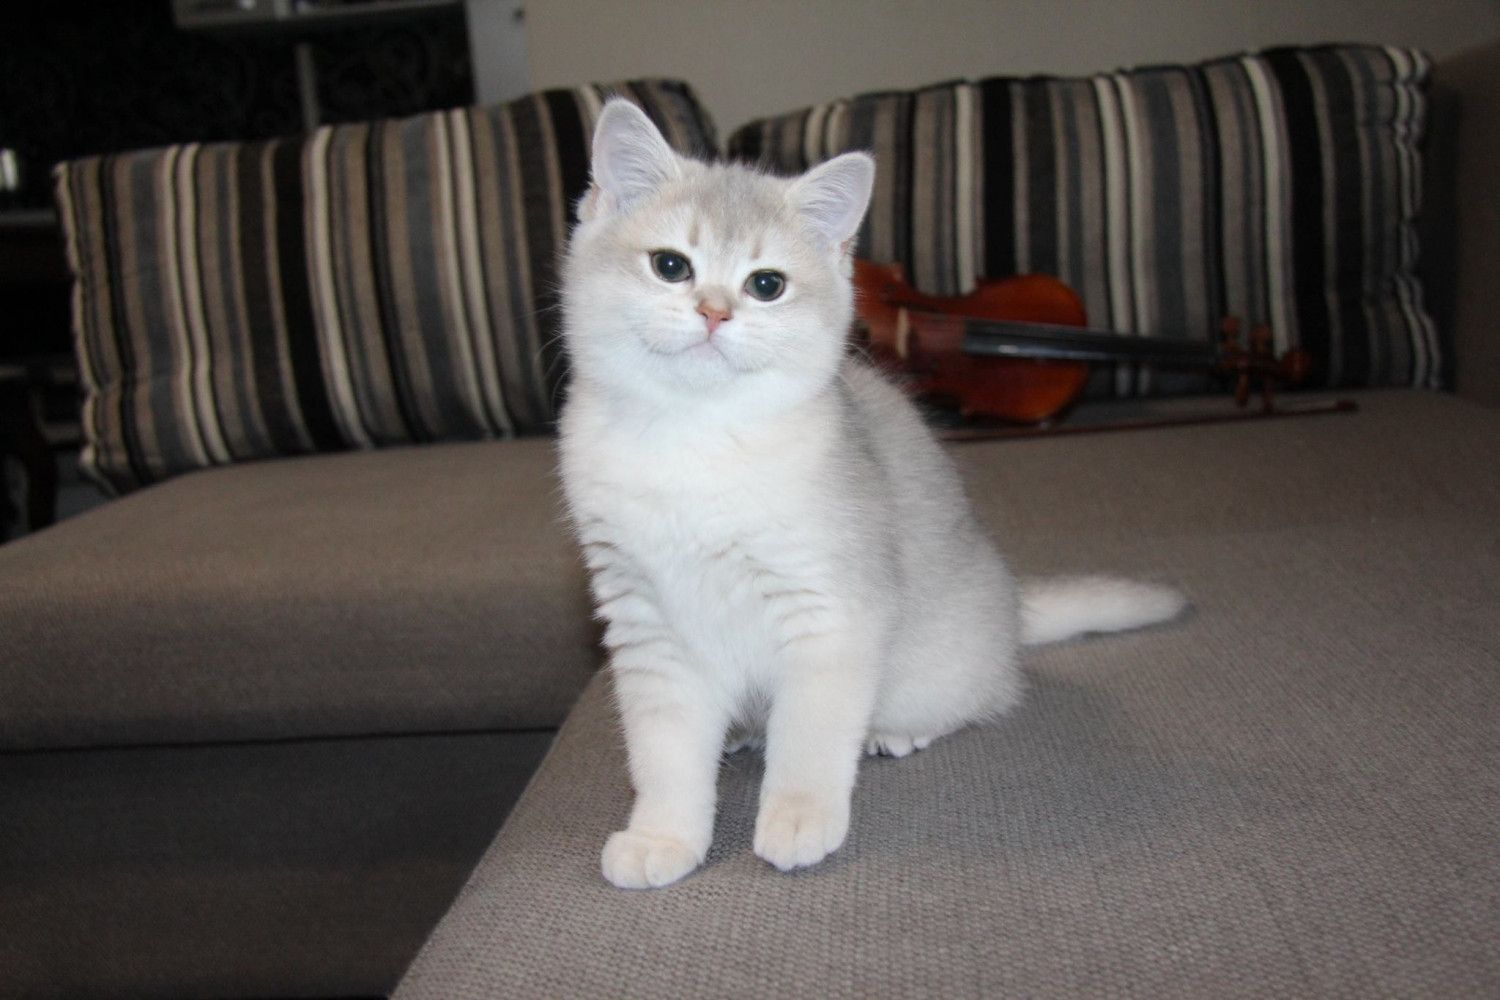 British Shorthair Cats For Sale Fresno Ca In 2020 British Shorthair Cats Cats For Sale Kitten Adoption